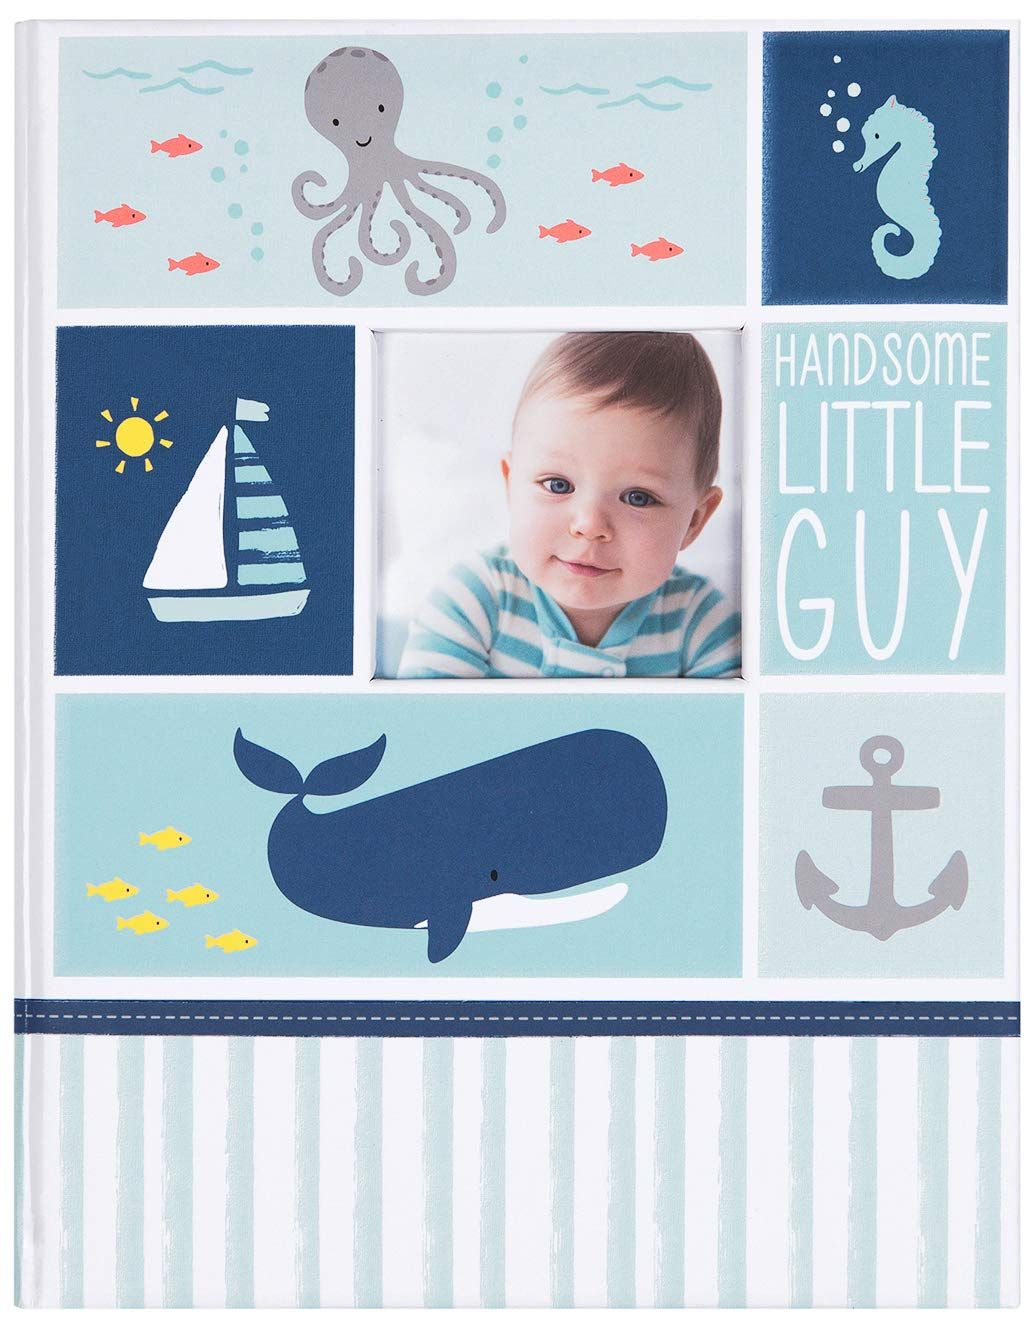 Carter's Blue Nautical My First Years Bound Memory Book for Baby Boys, 9 W x 11.125 H, 60 Pages 9 W x 11.125 H C.R. Gibson B2-14074